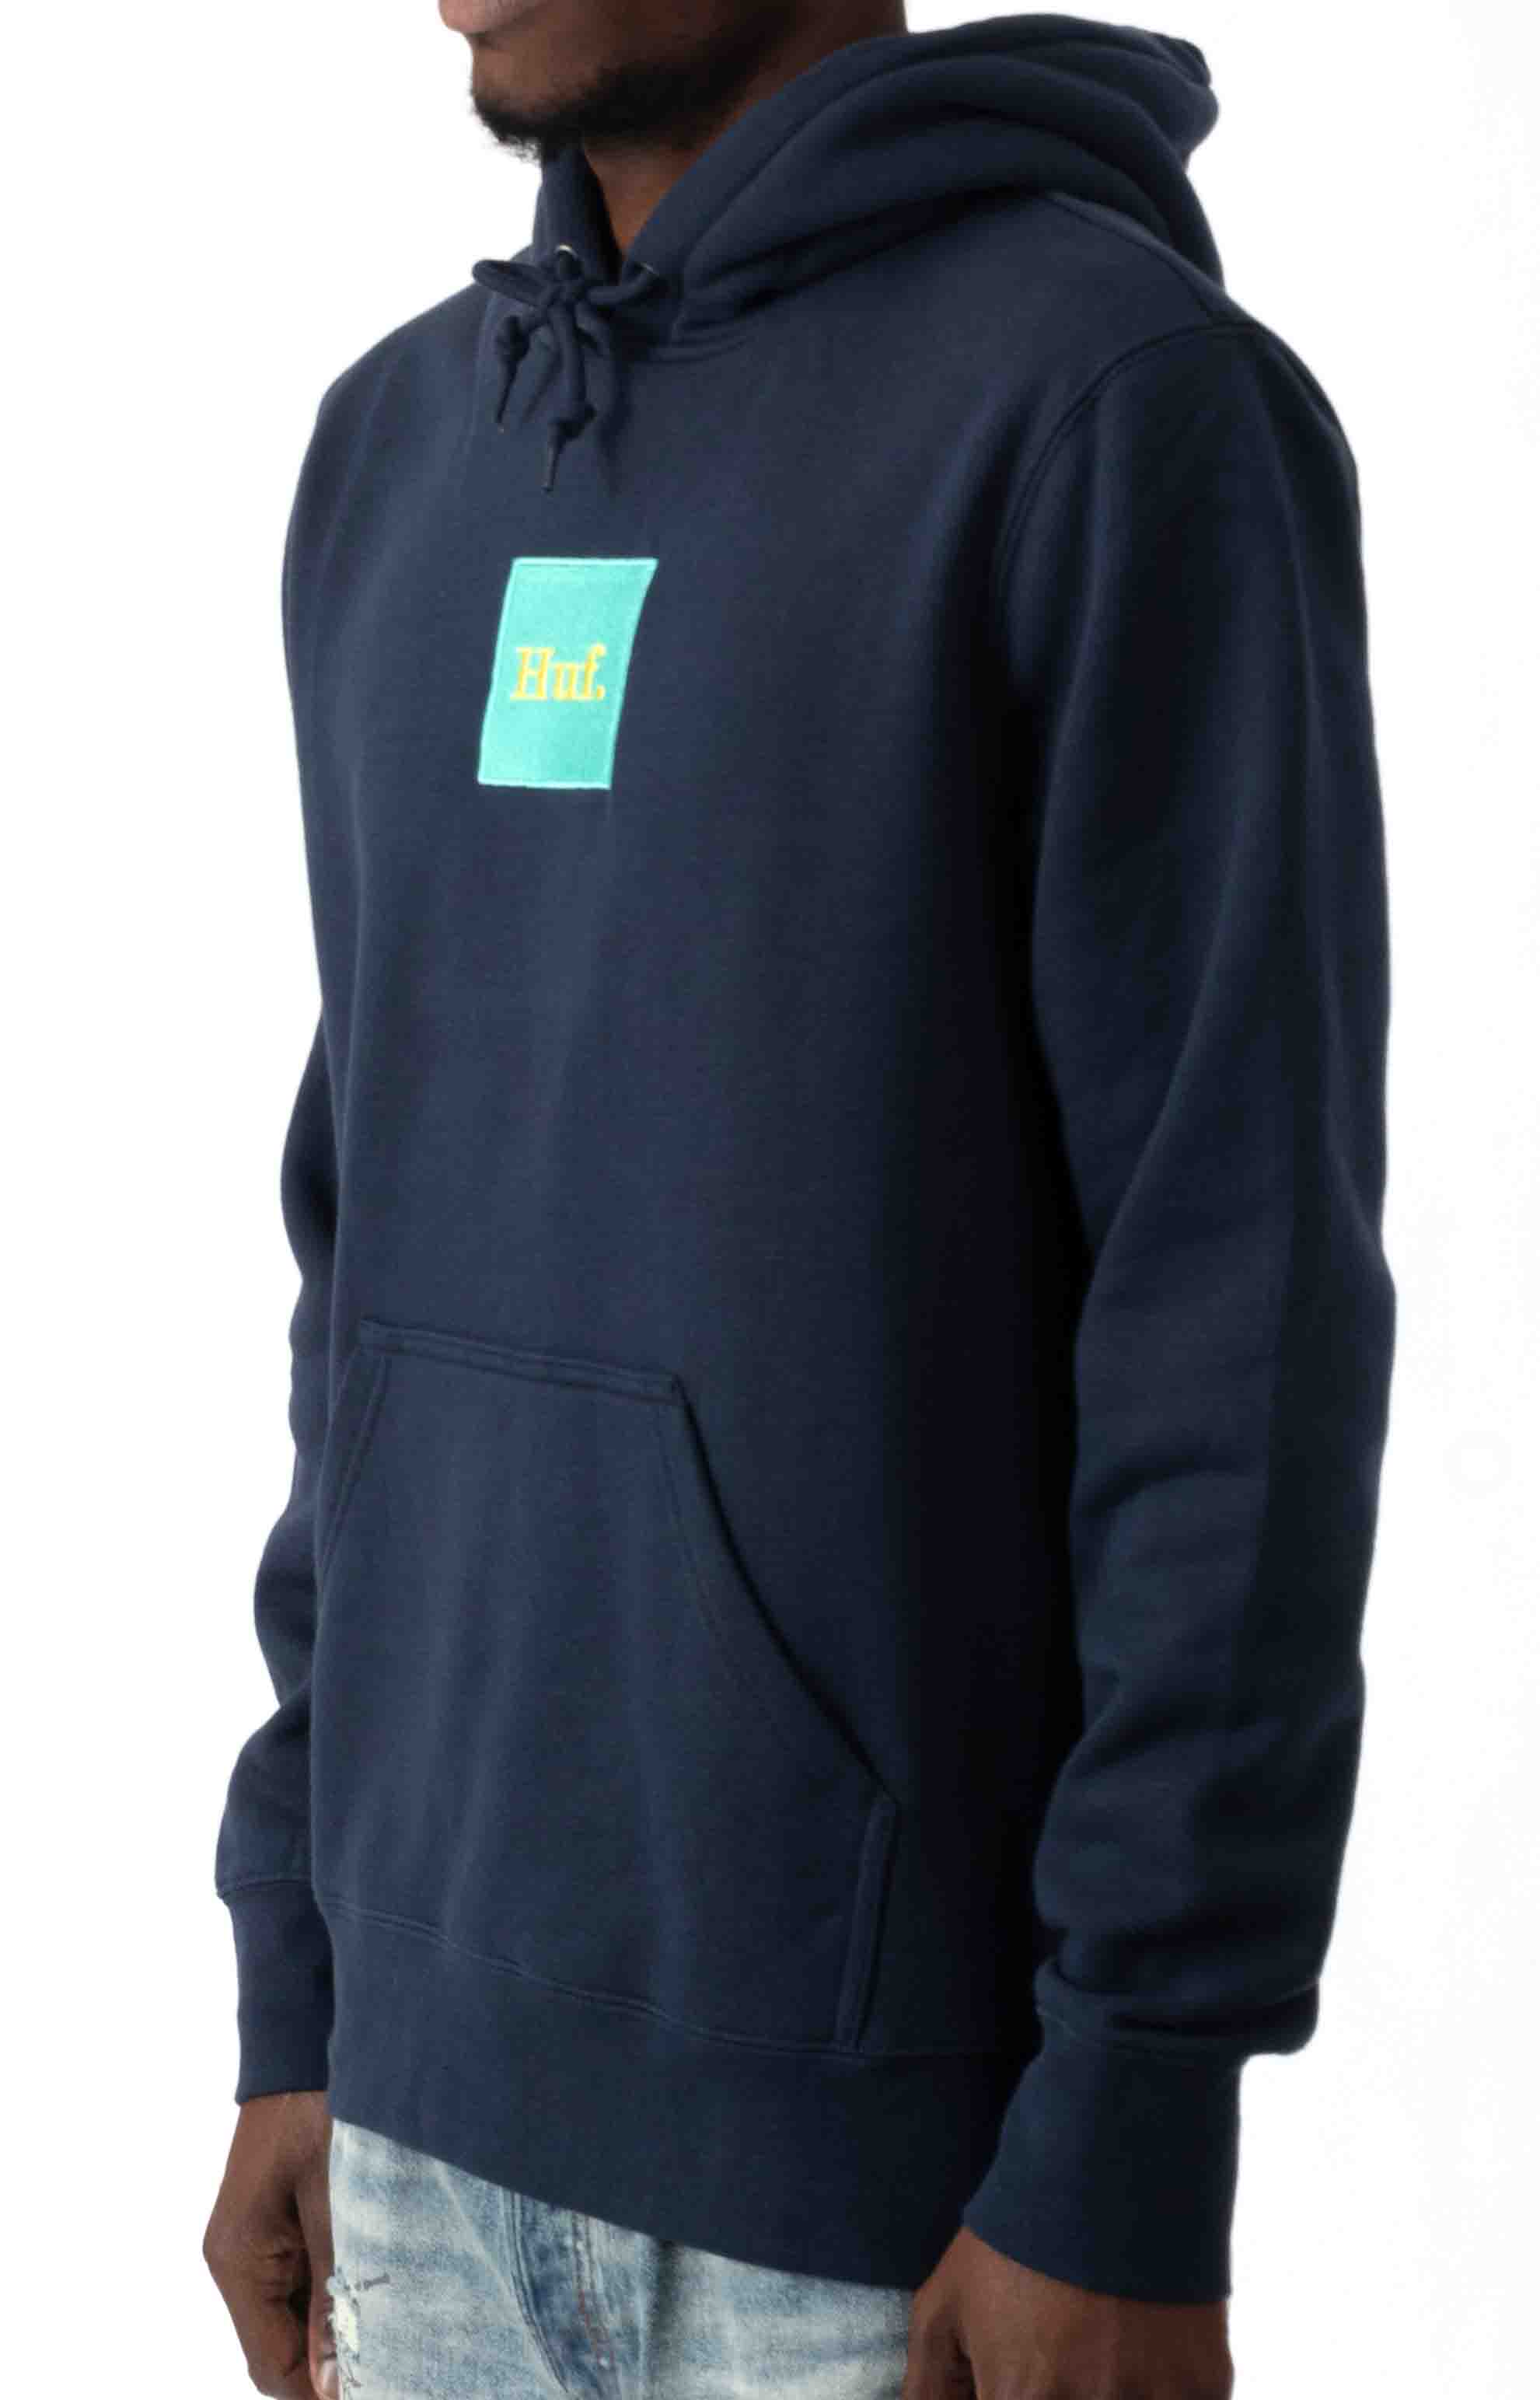 Domestic Box Embroidery Pullover Hoodie - Navy Blazer  2